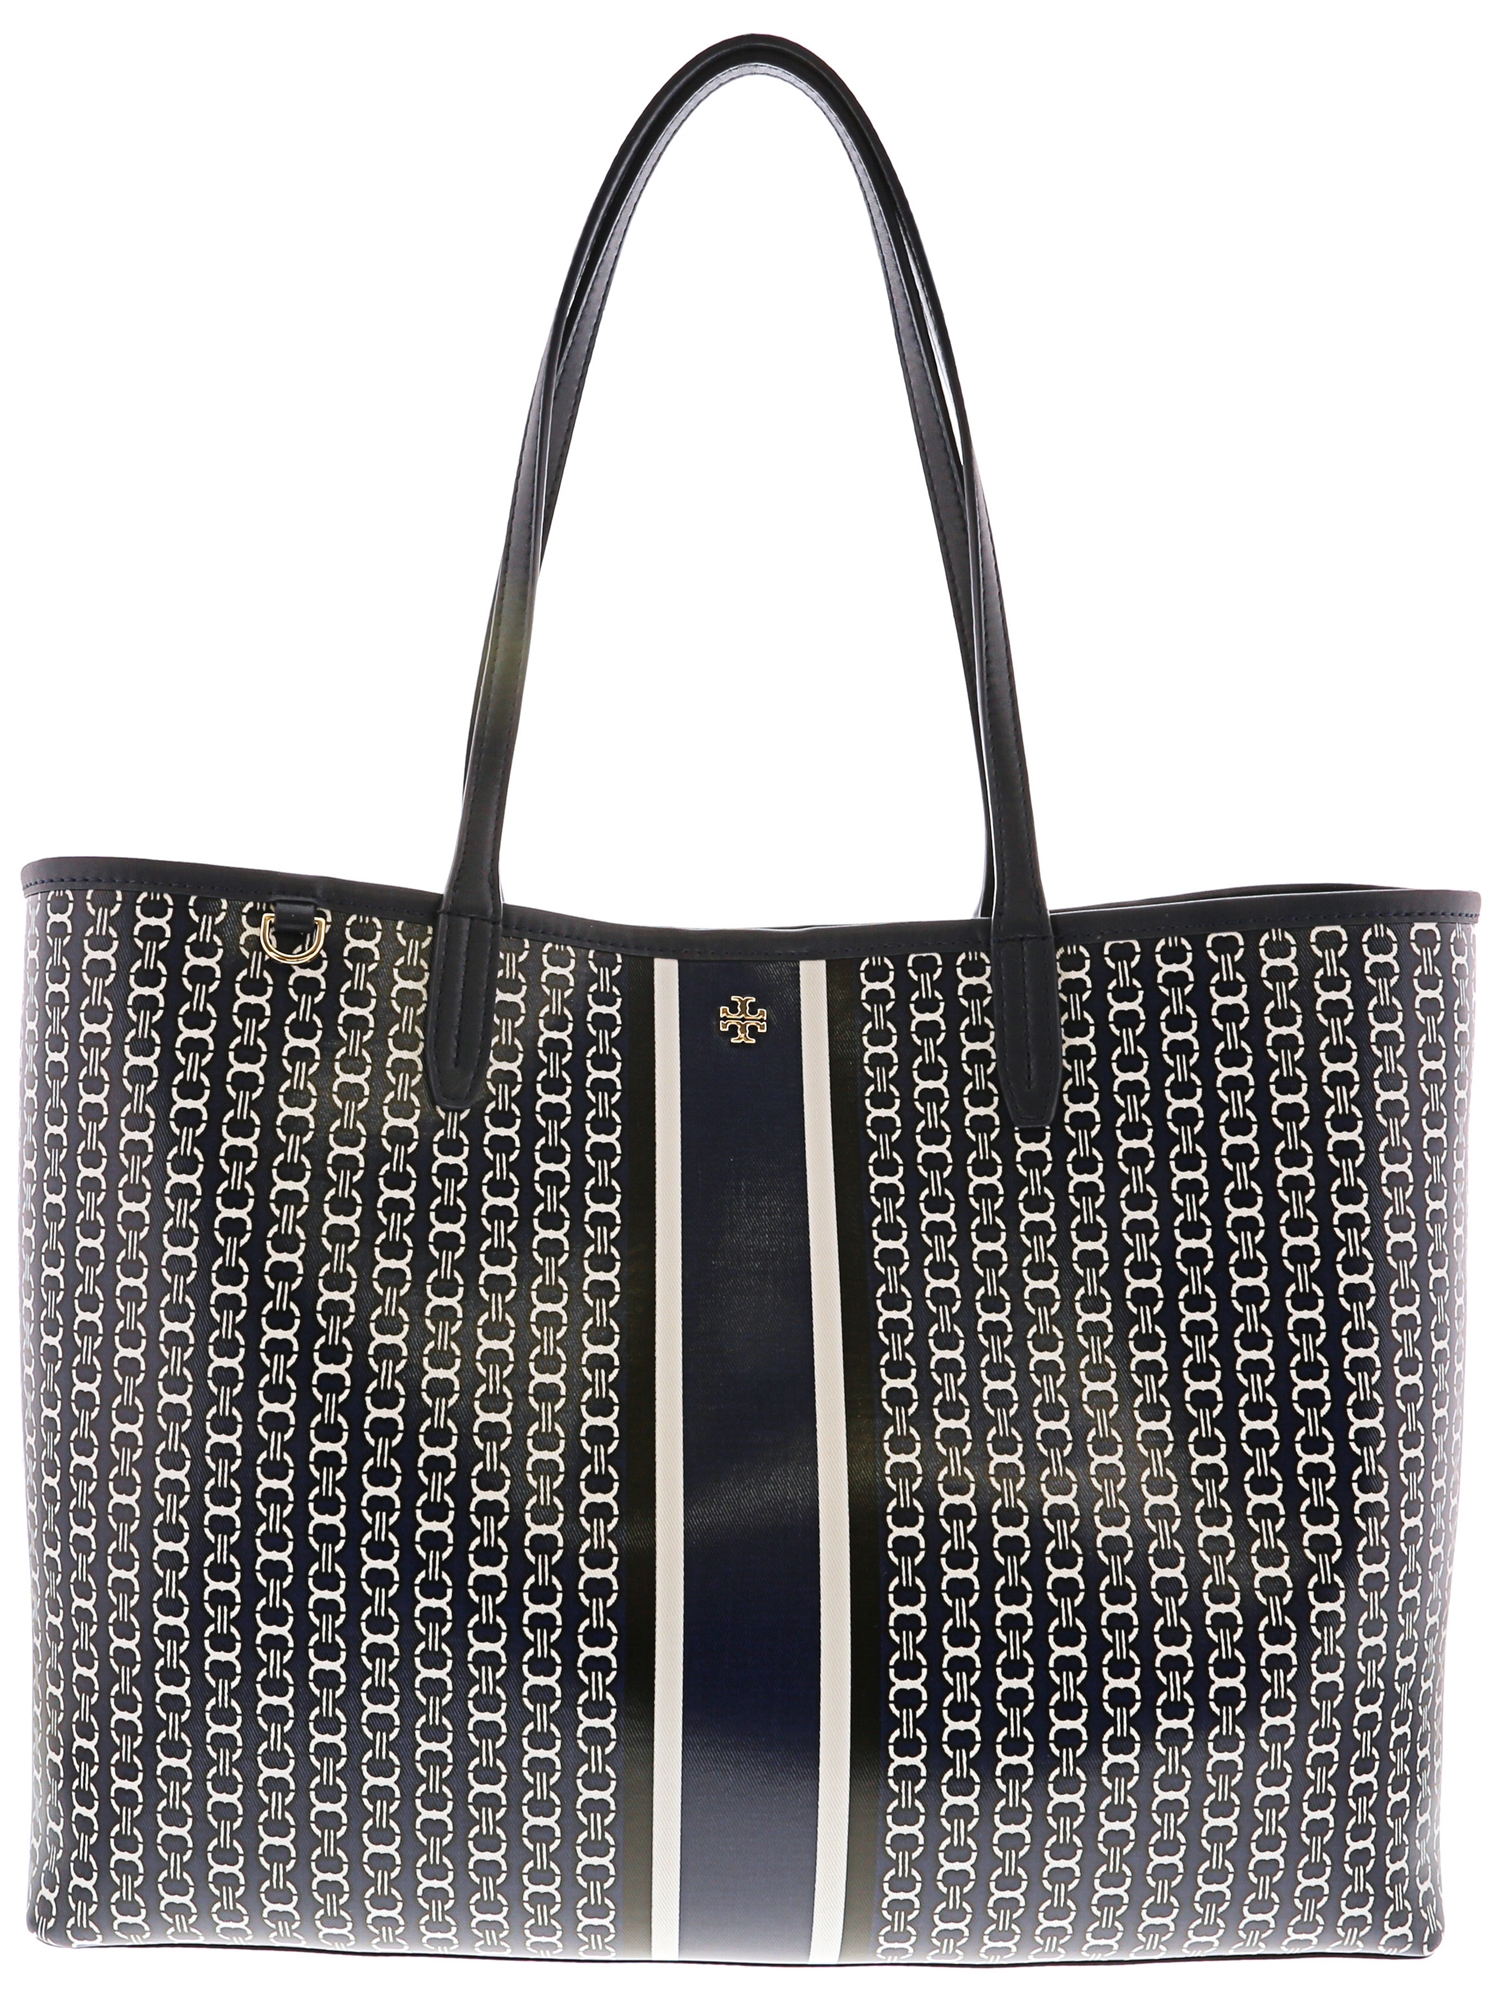 395b805dfcd Tory Burch - Tory Burch Women s Gemini Link Tote Canvas Top-Handle Bag - French  Gray Stripe - Walmart.com